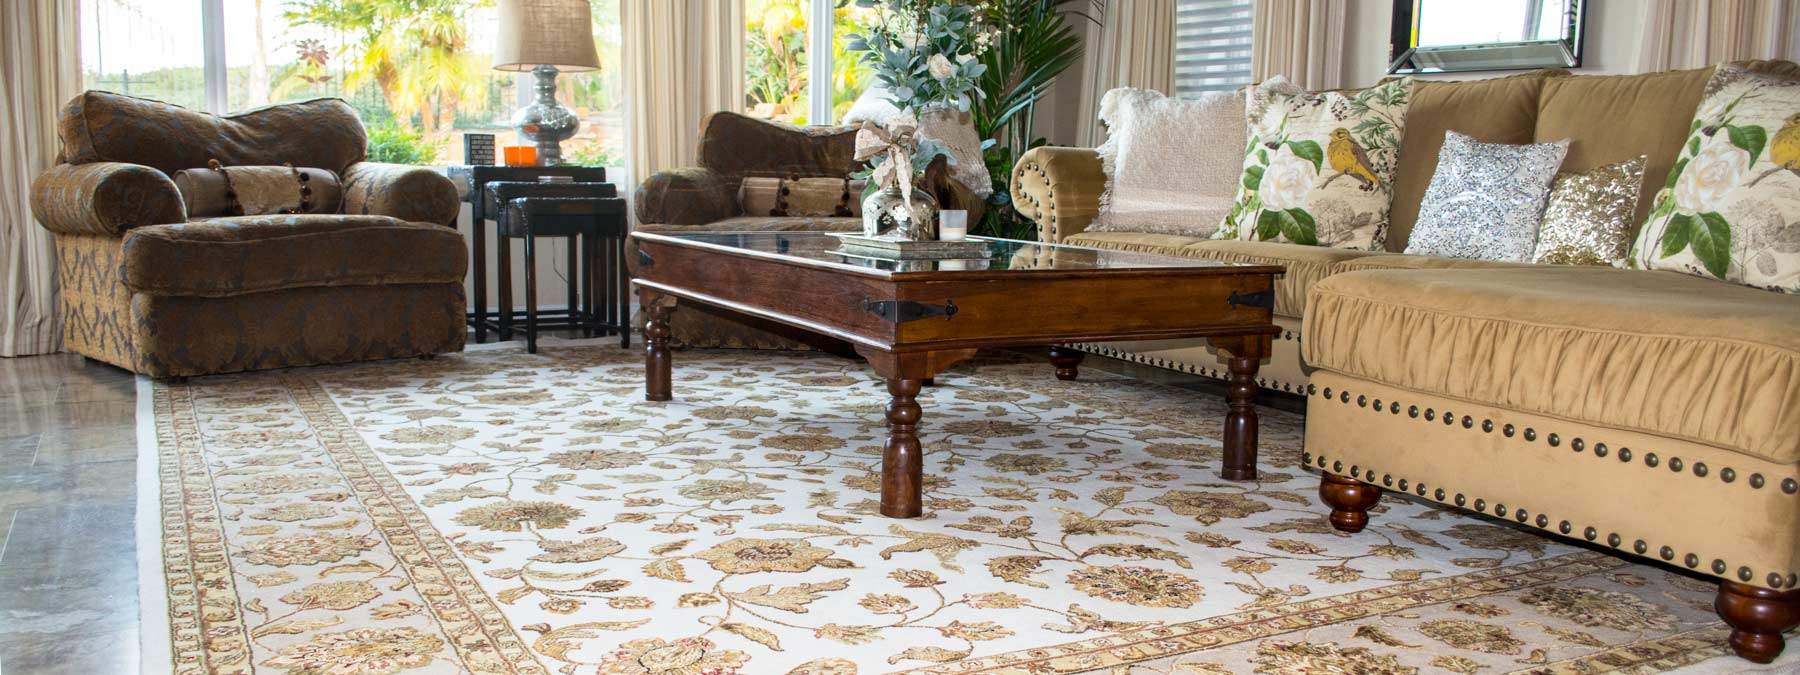 Fine hand made area rugs in thousand oaks